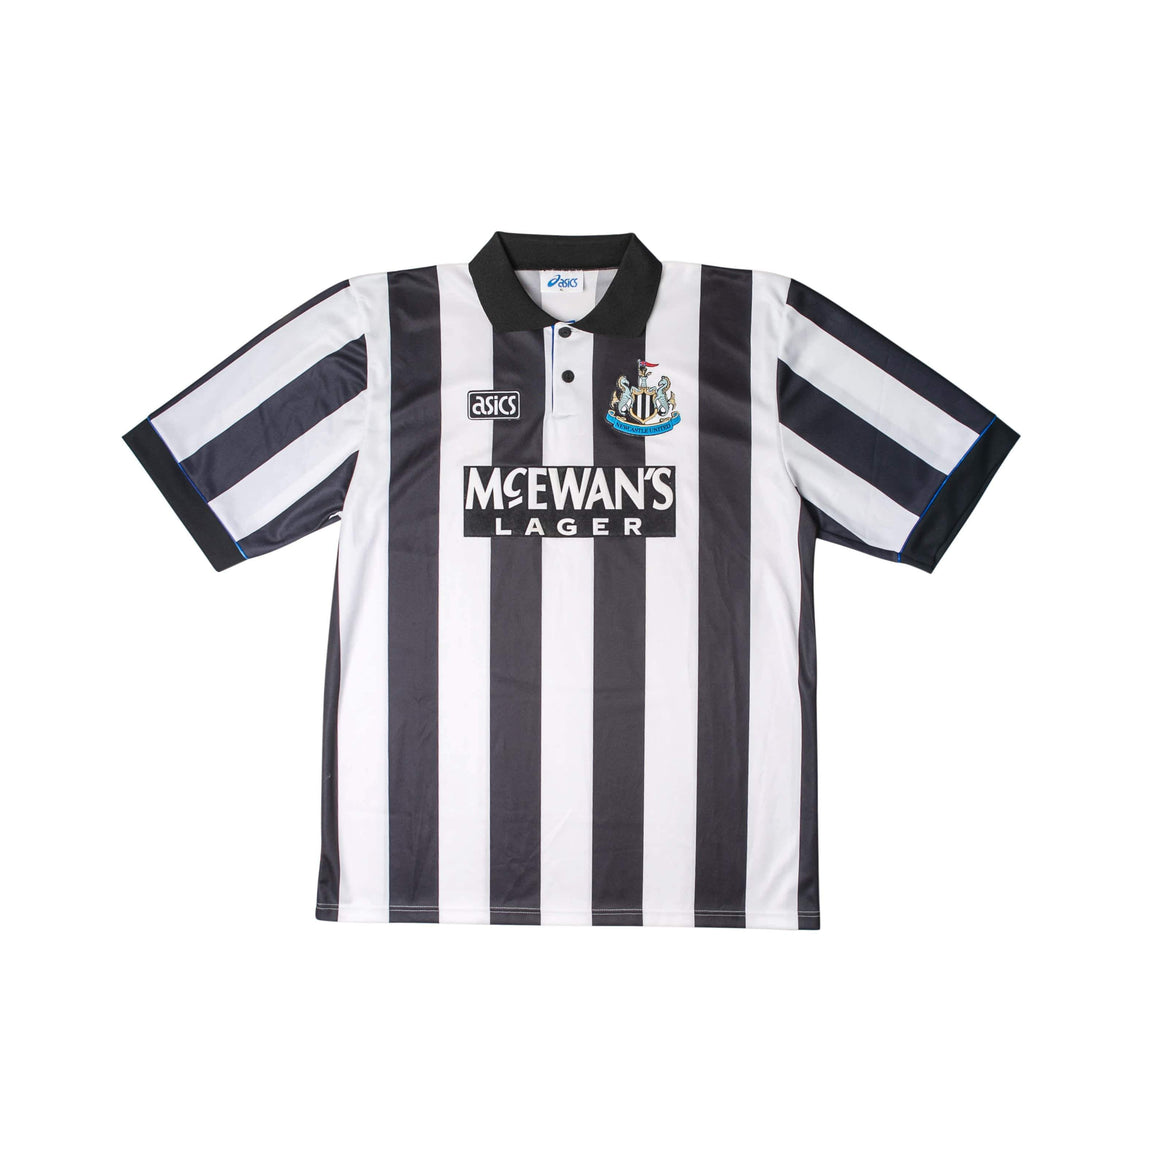 1993-95 Newcastle United home football Shirt XL (Excellent) - Football Shirt Collective